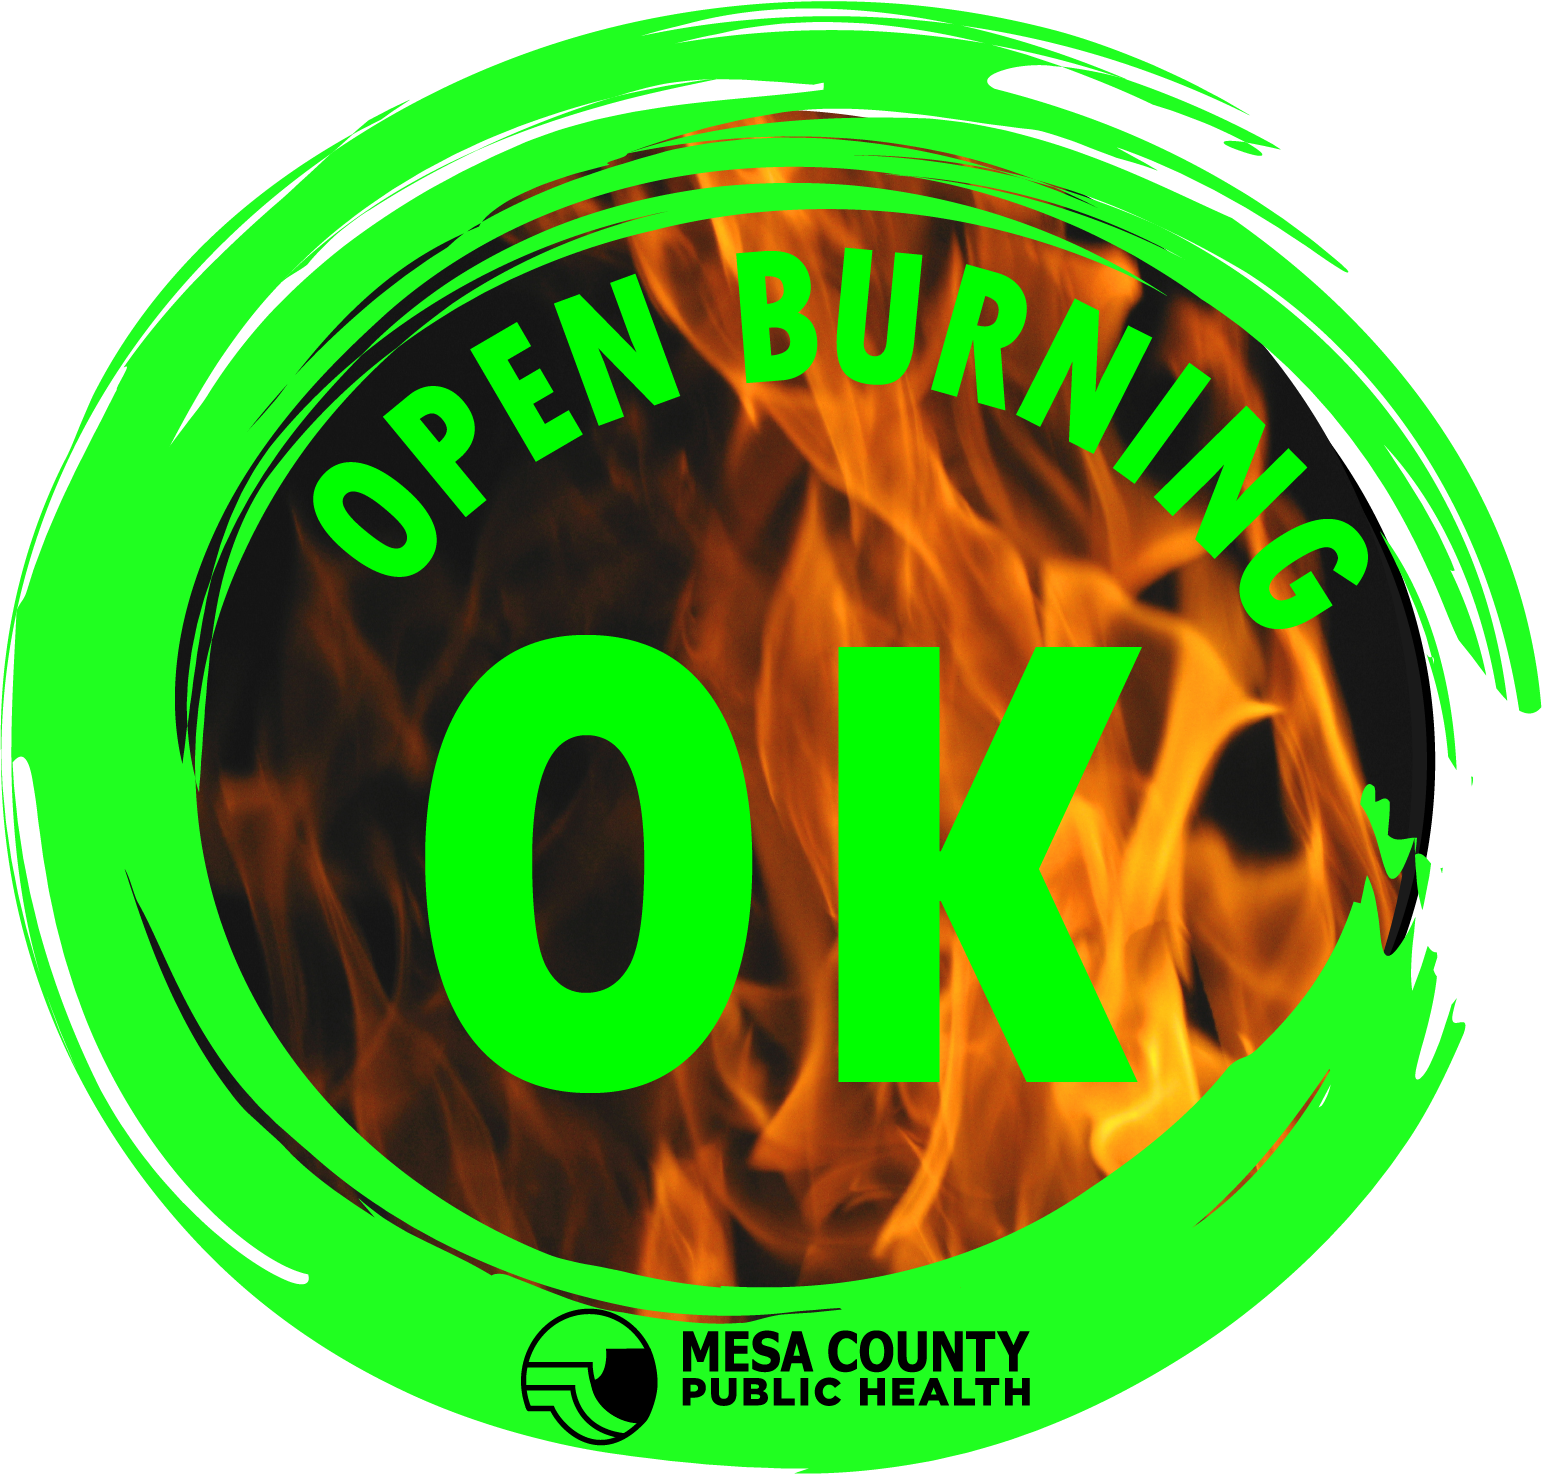 Fall Open Burn Season begins Sept. 1